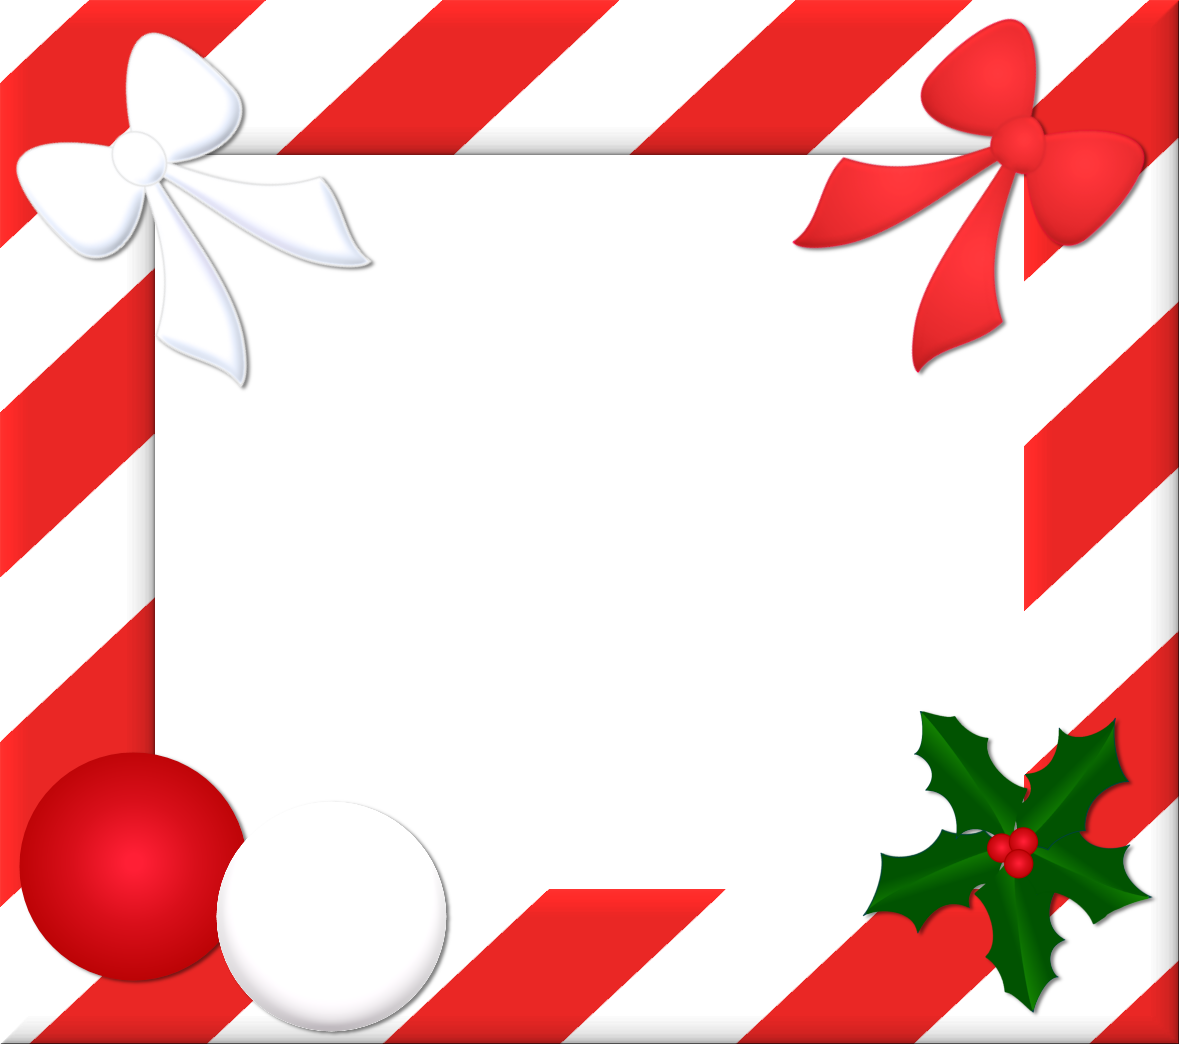 Holiday clipart picture frame. Frames startups co official